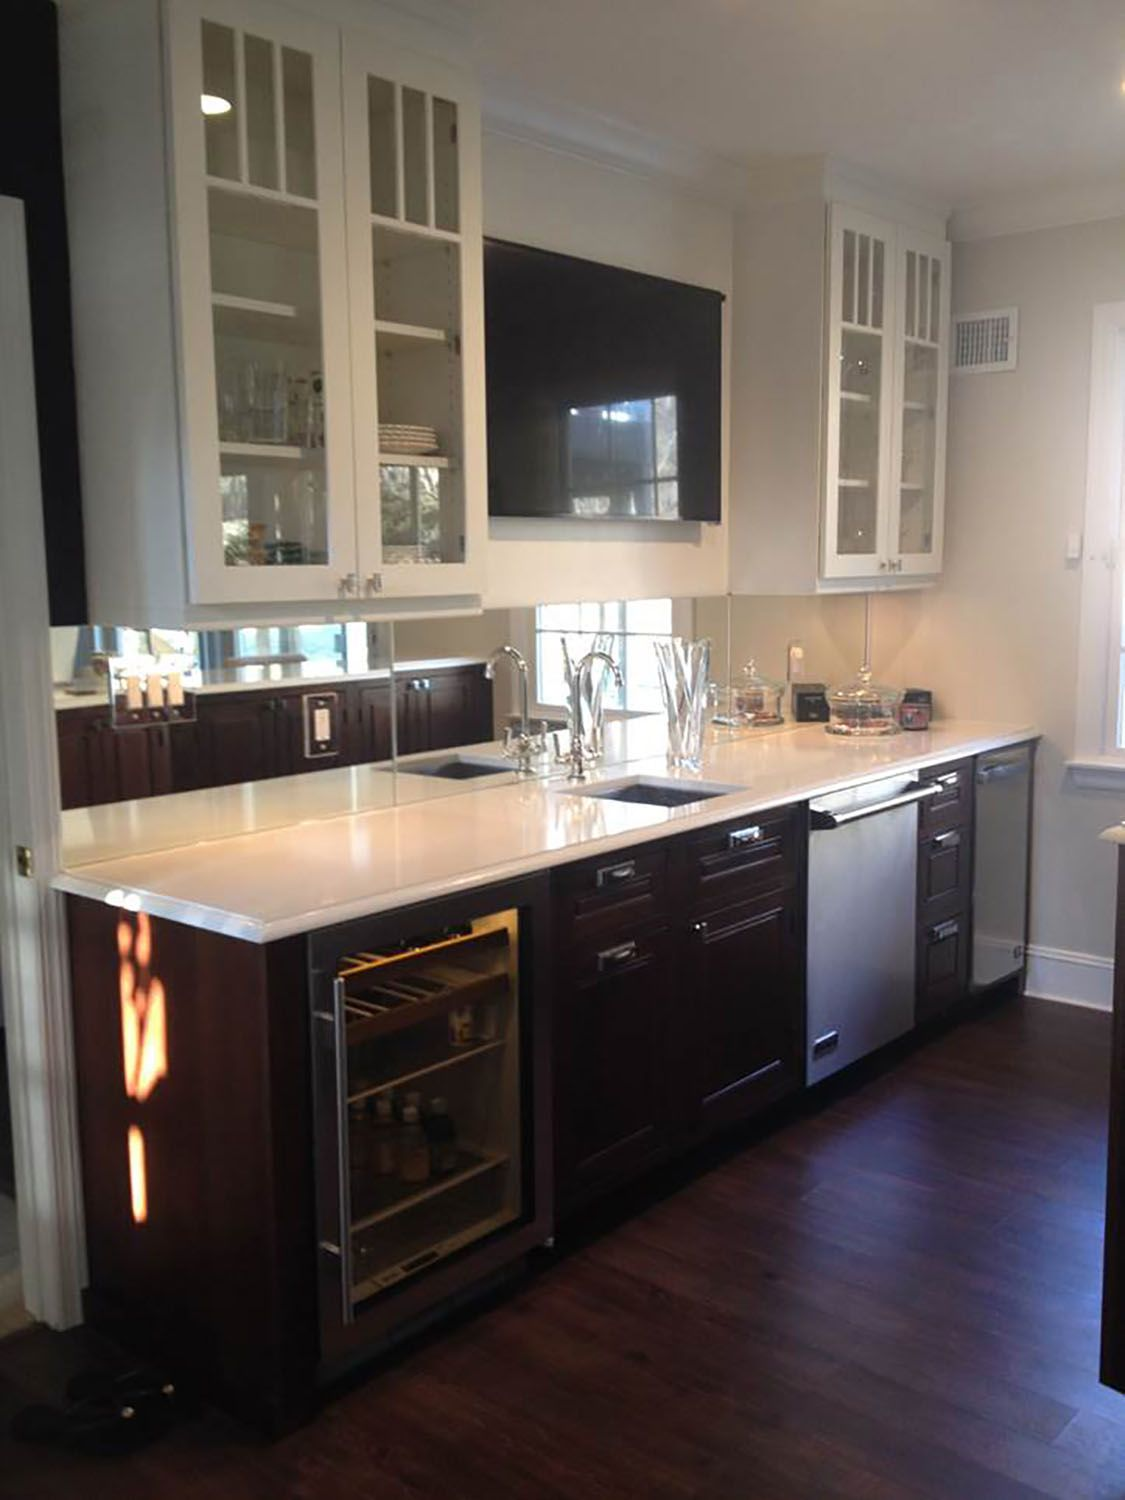 Briarcliff New York kitchen renovation features ...